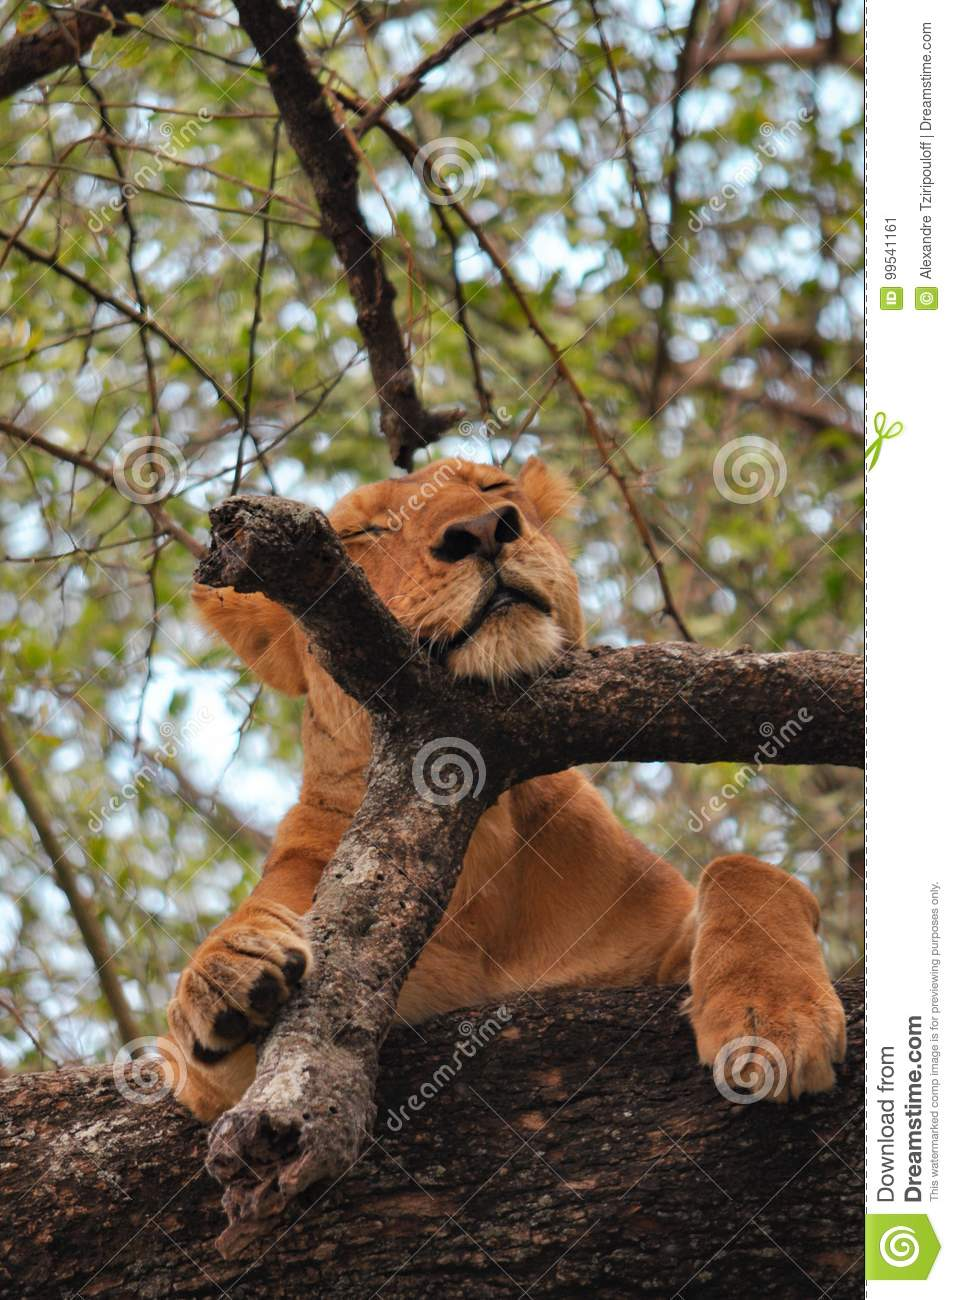 A lioness in a tree in Lake park, Tanzania.